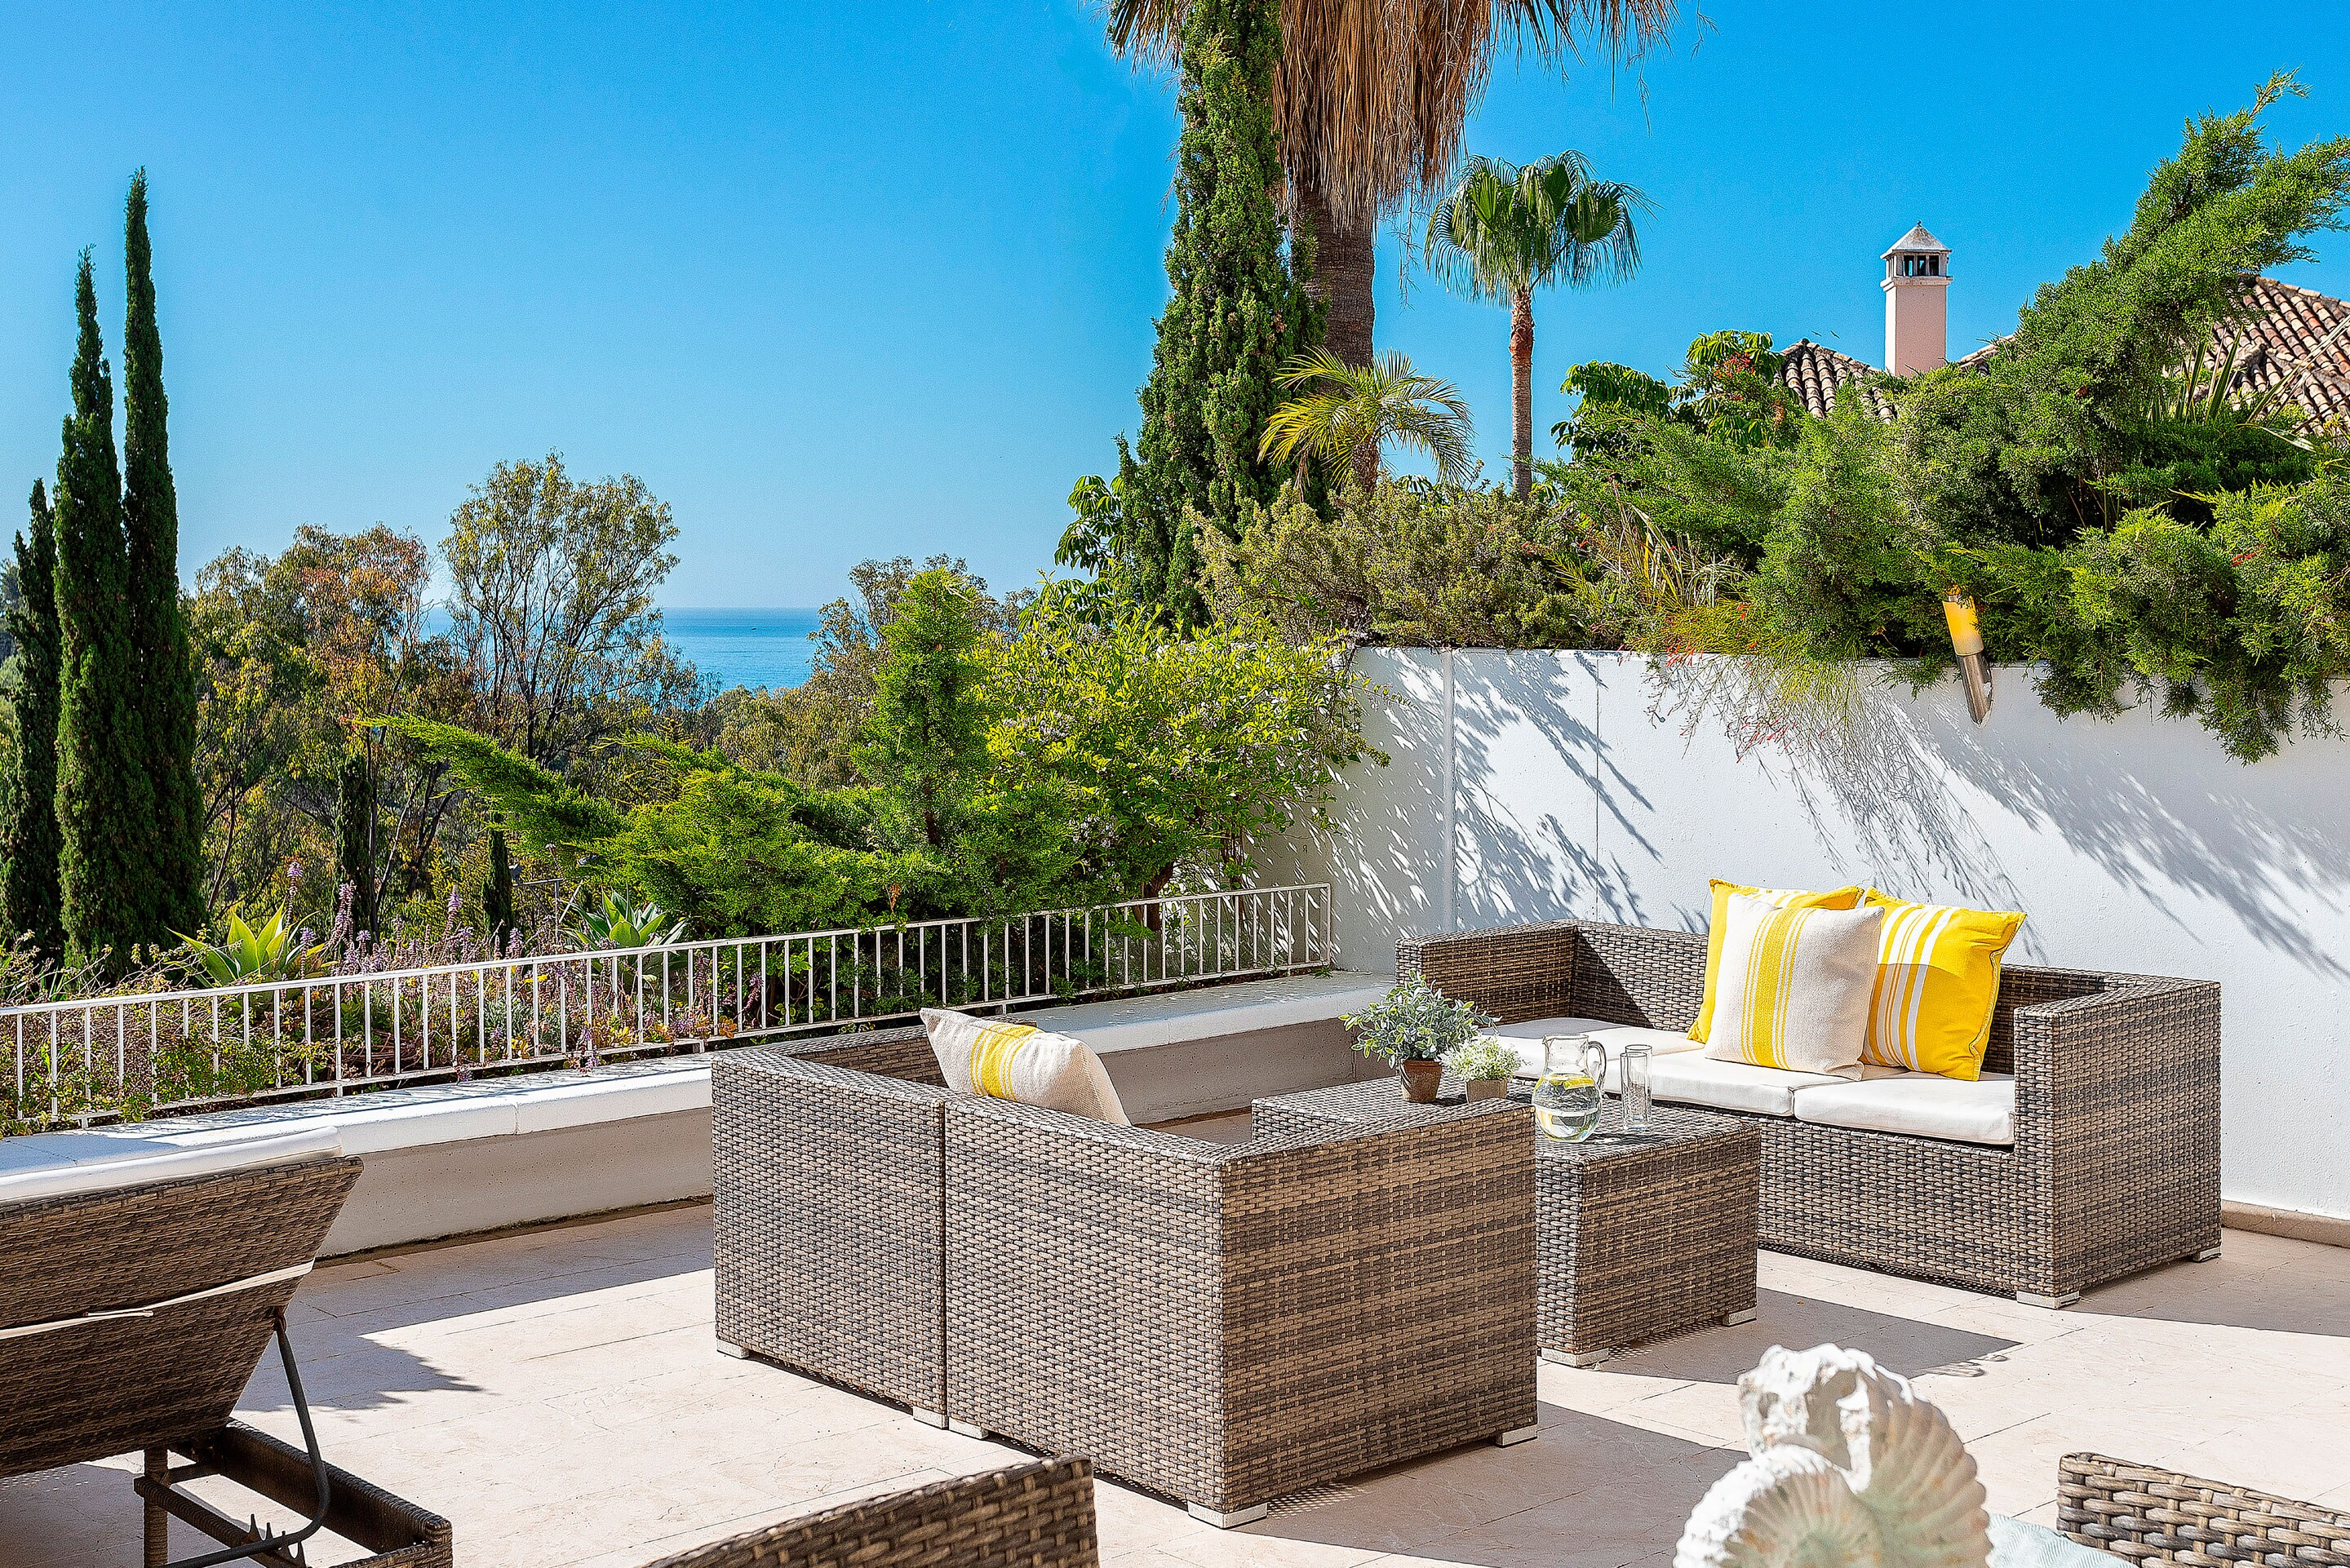 2 Bedrooms Apartment and private terrace in center of Marbella